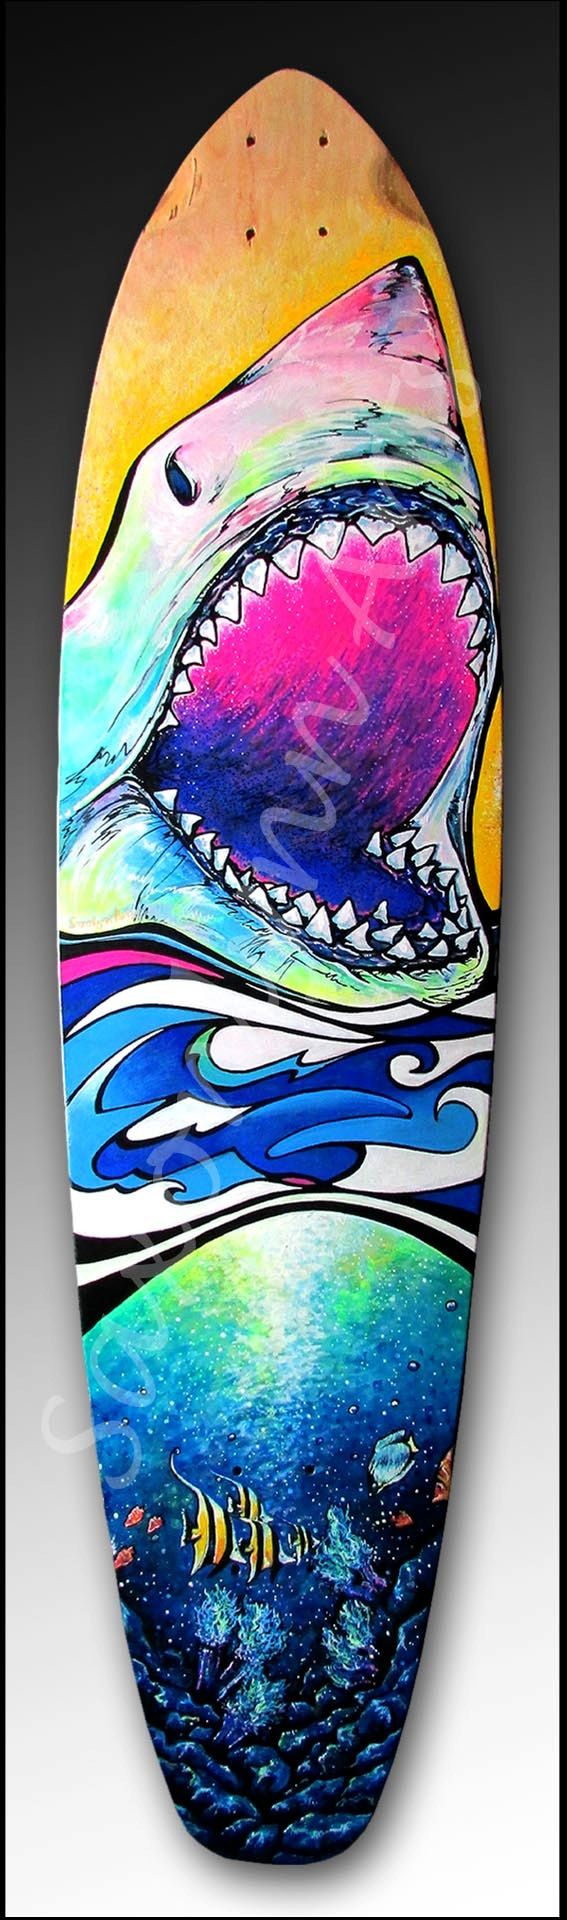 great white shark shark art longboard art sea life art at the point where next time i order a blank deck i m paying